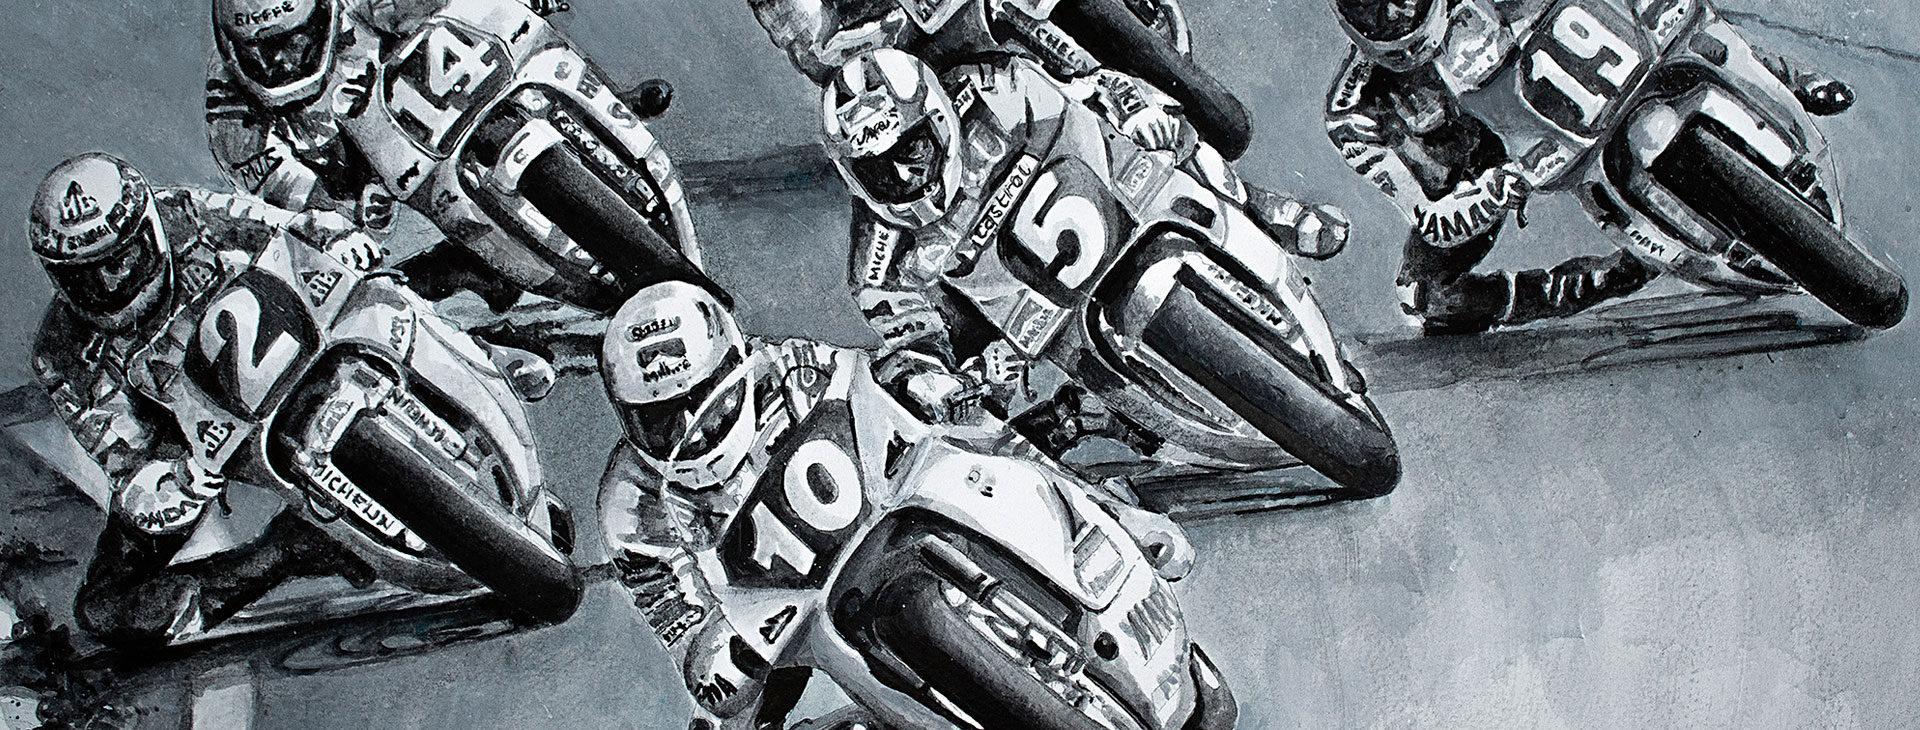 Martin Wimmer leading a pack of World Champions on the Aprilia